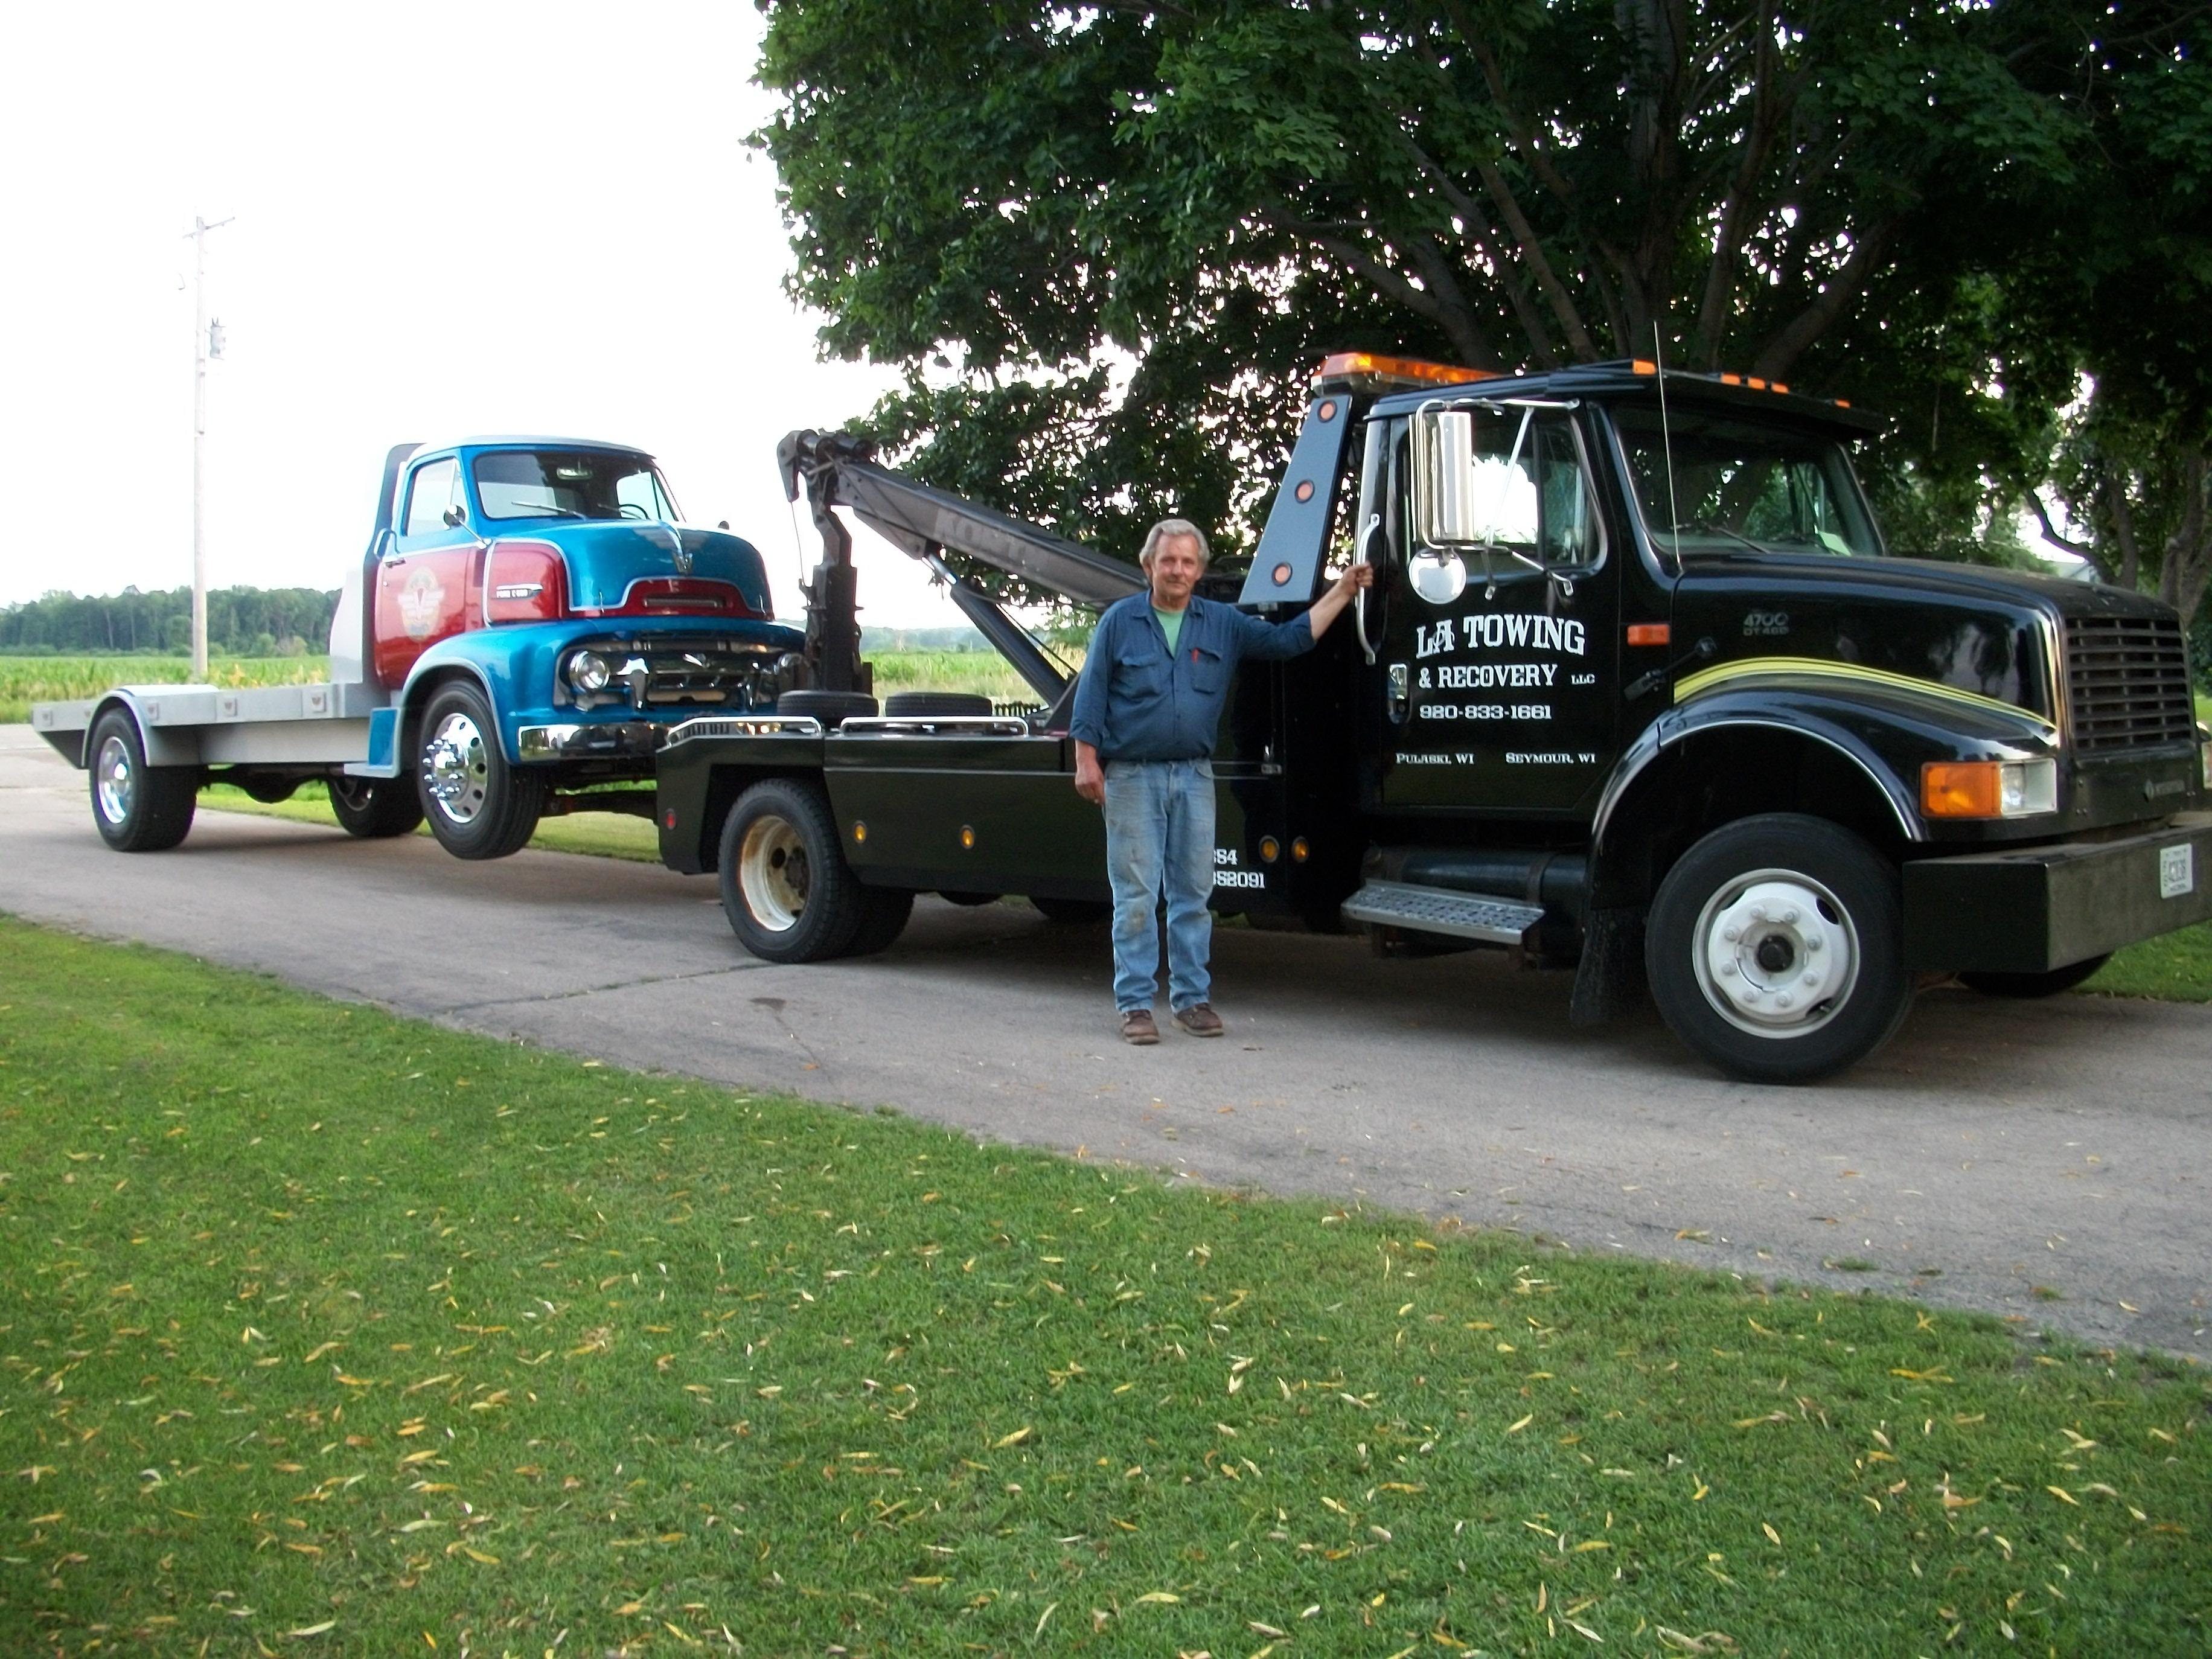 LA Towing & Recovery, LLC image 29